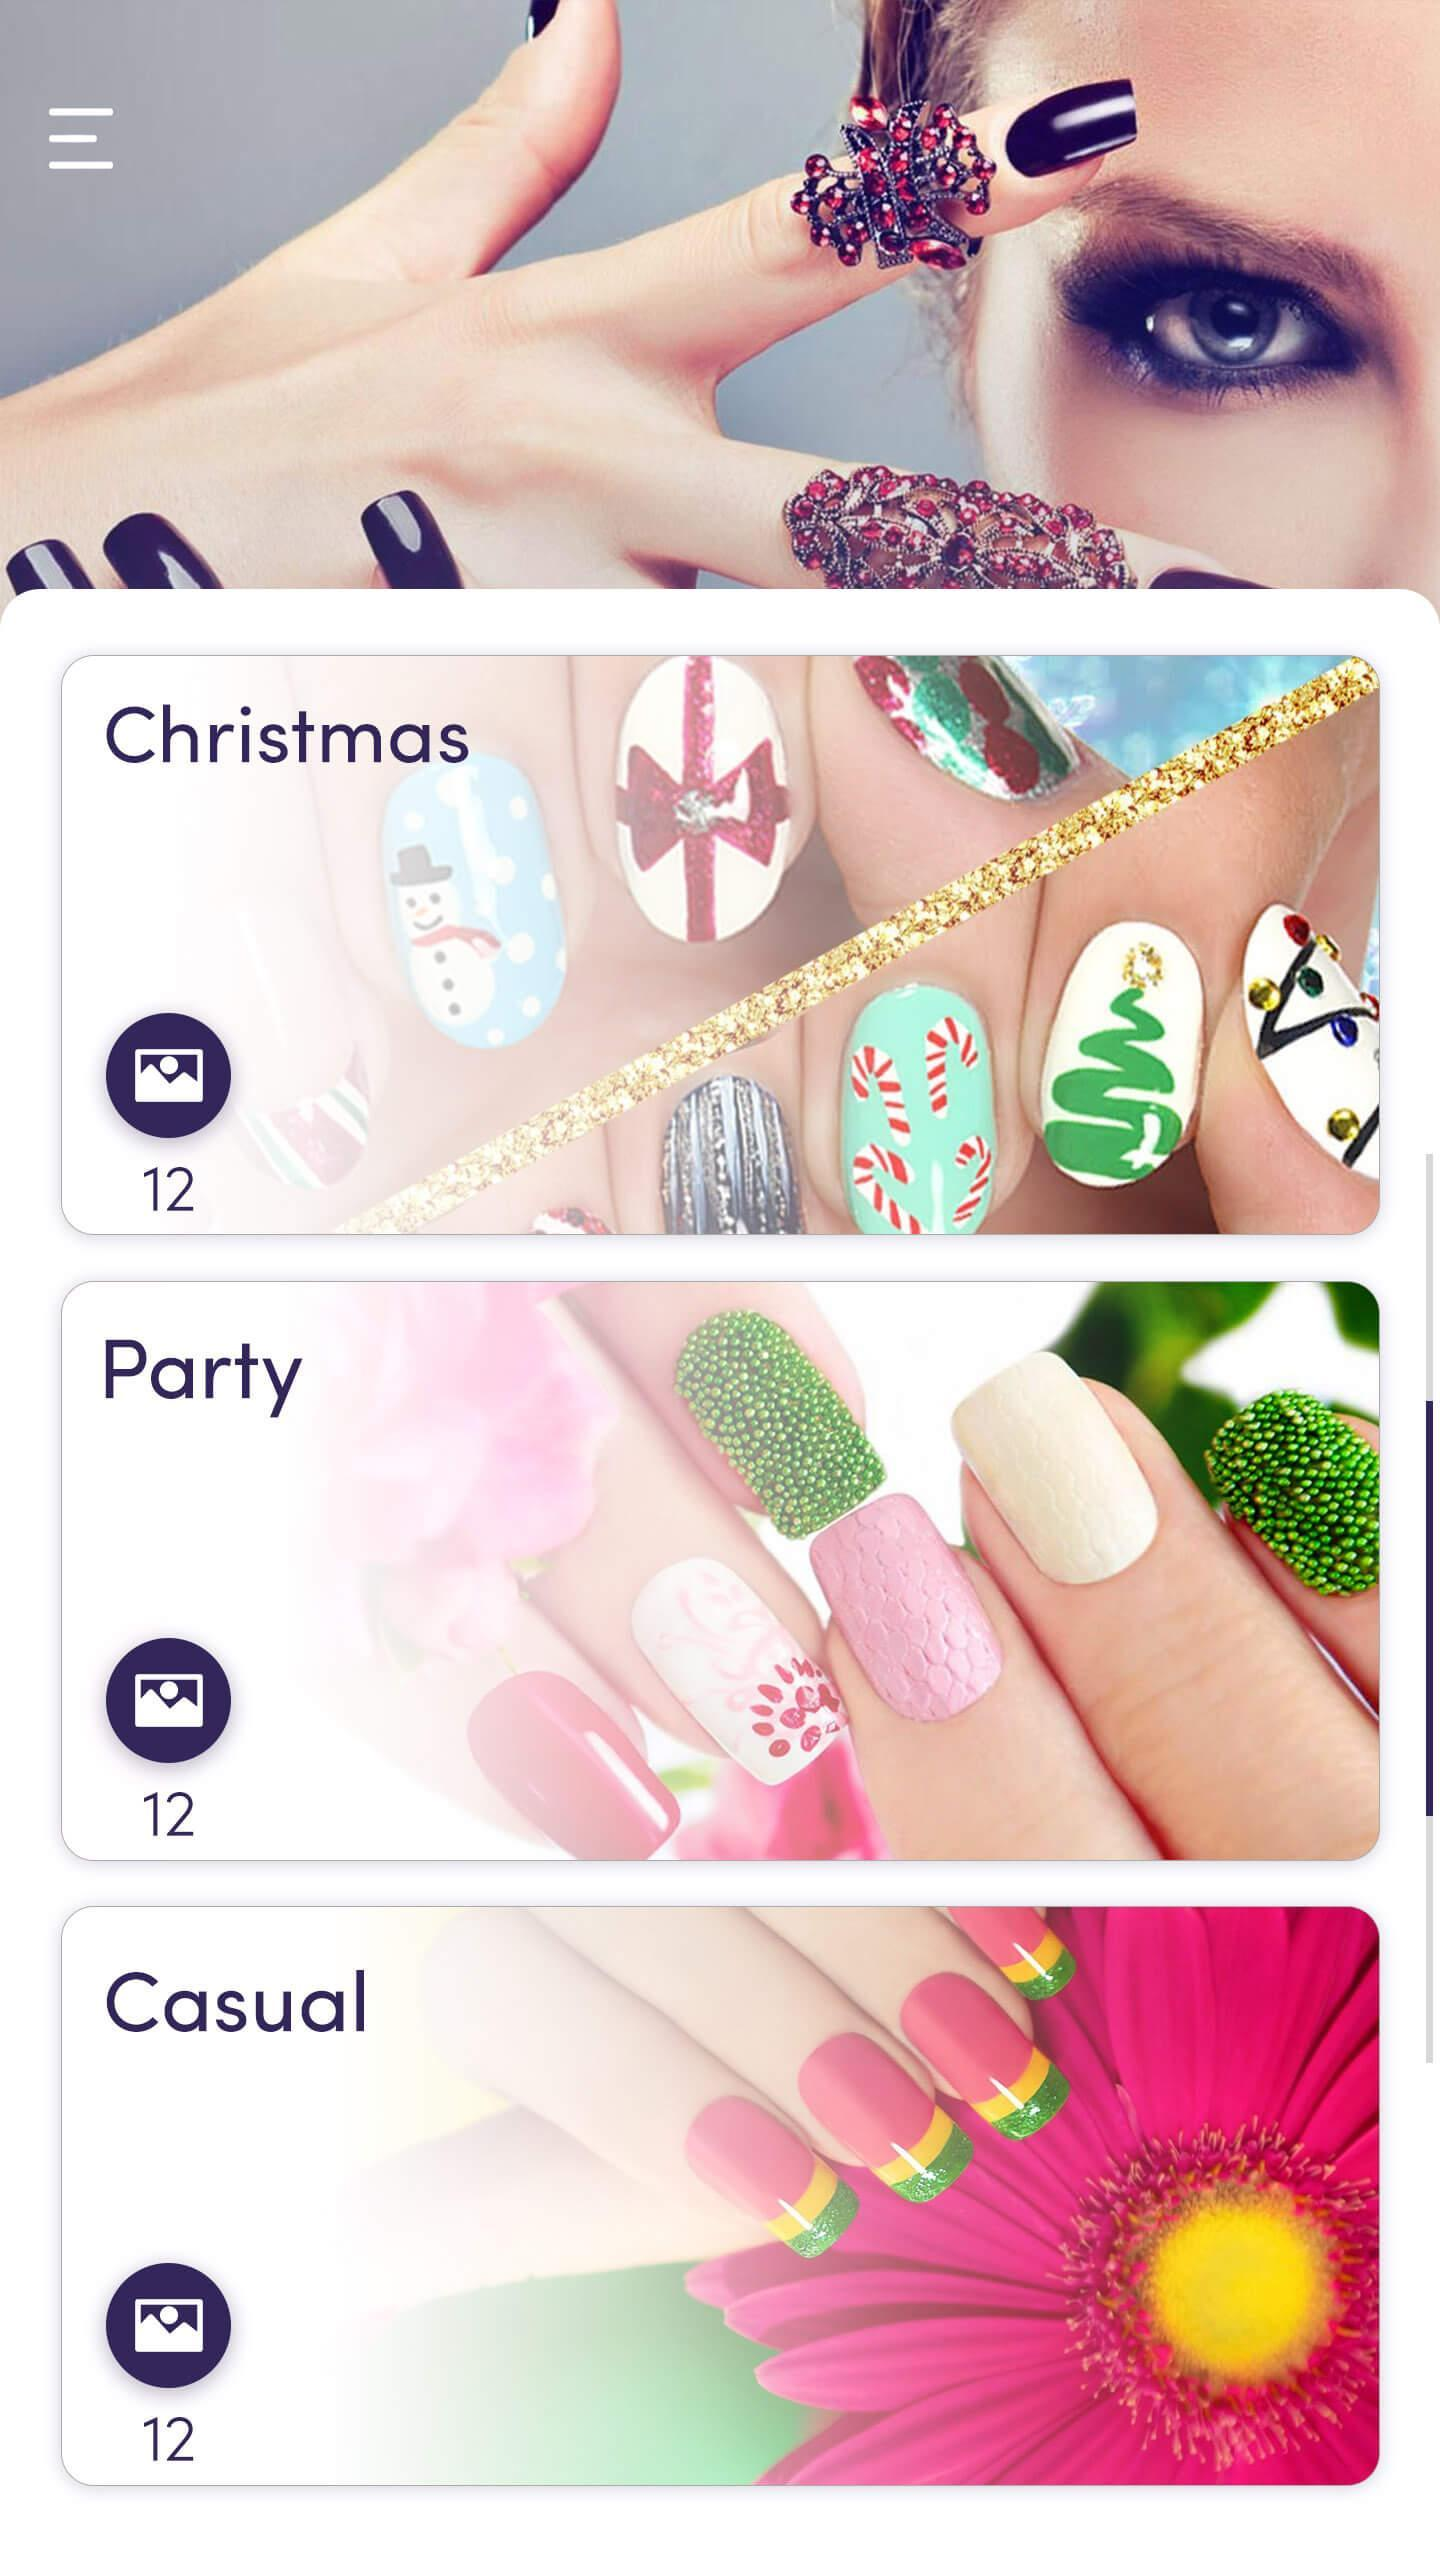 Simple Nail Art Designs Trendy Makeup Nailbook App for